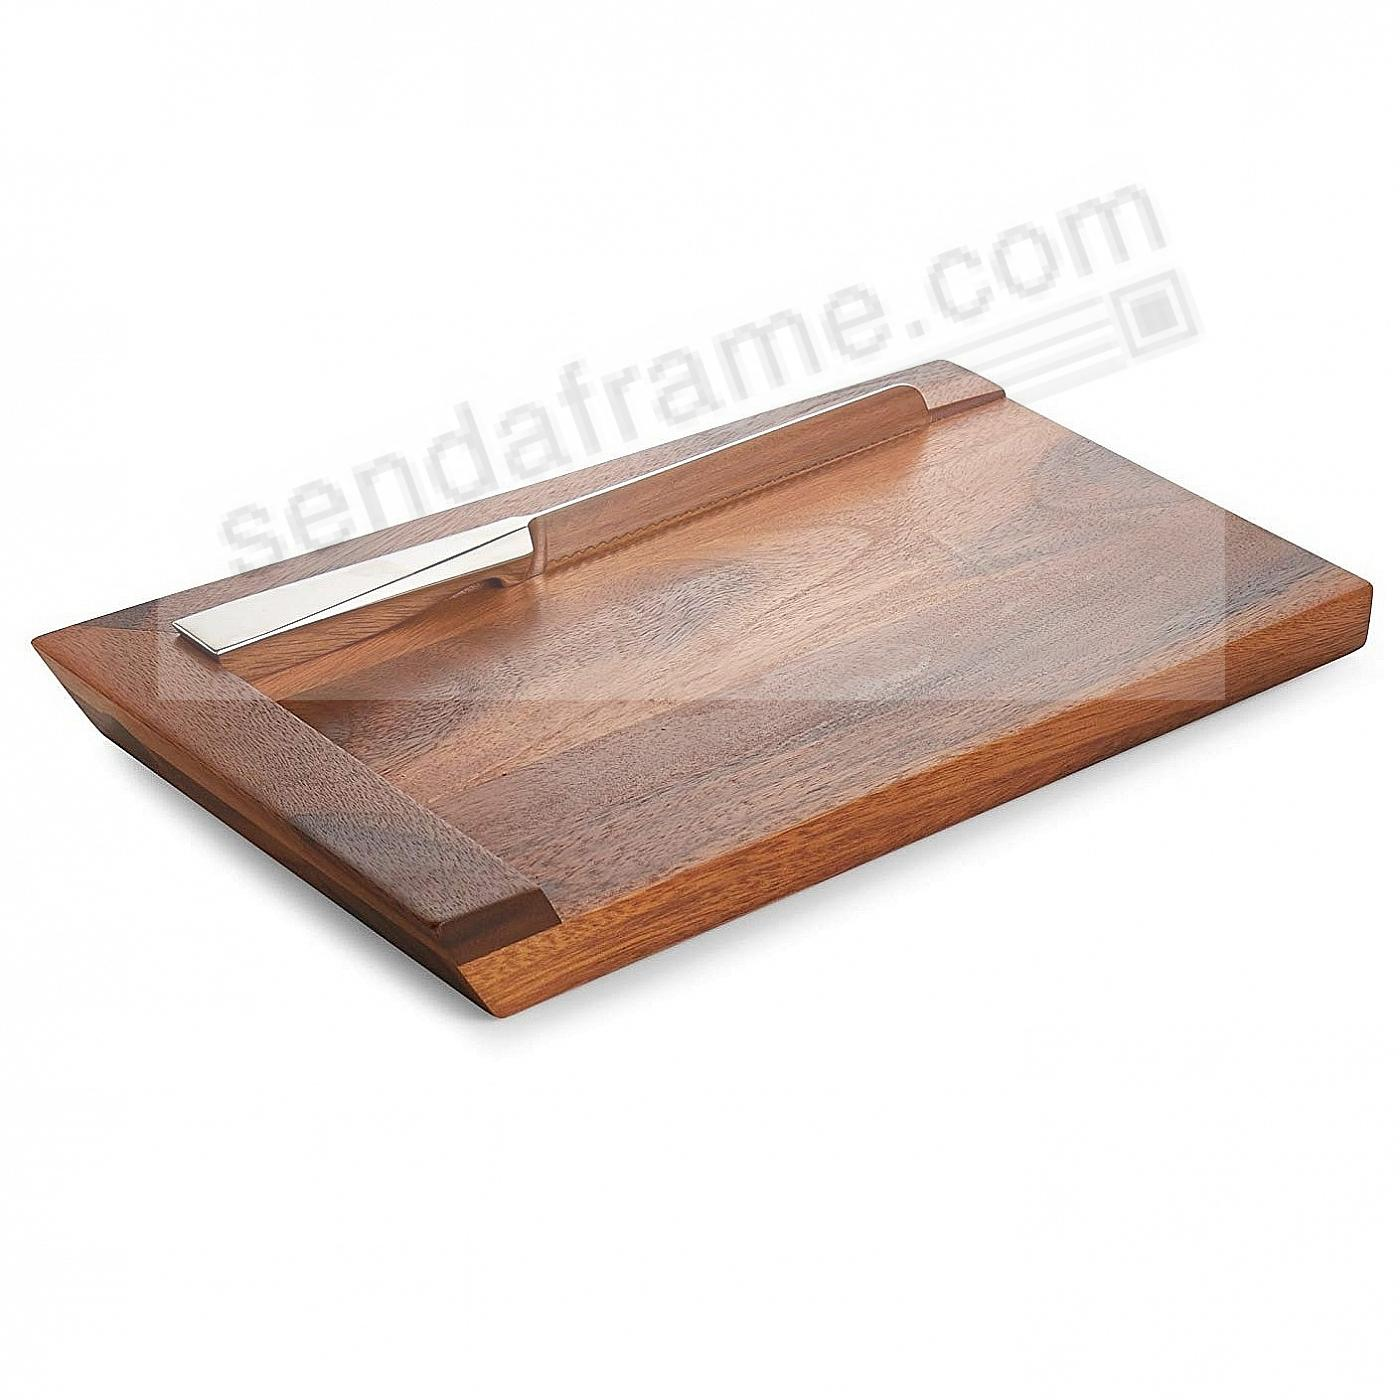 The GEO CHALLAH BREAD BOARD w/Knife - Wood/Stainless Steel by Nambe®